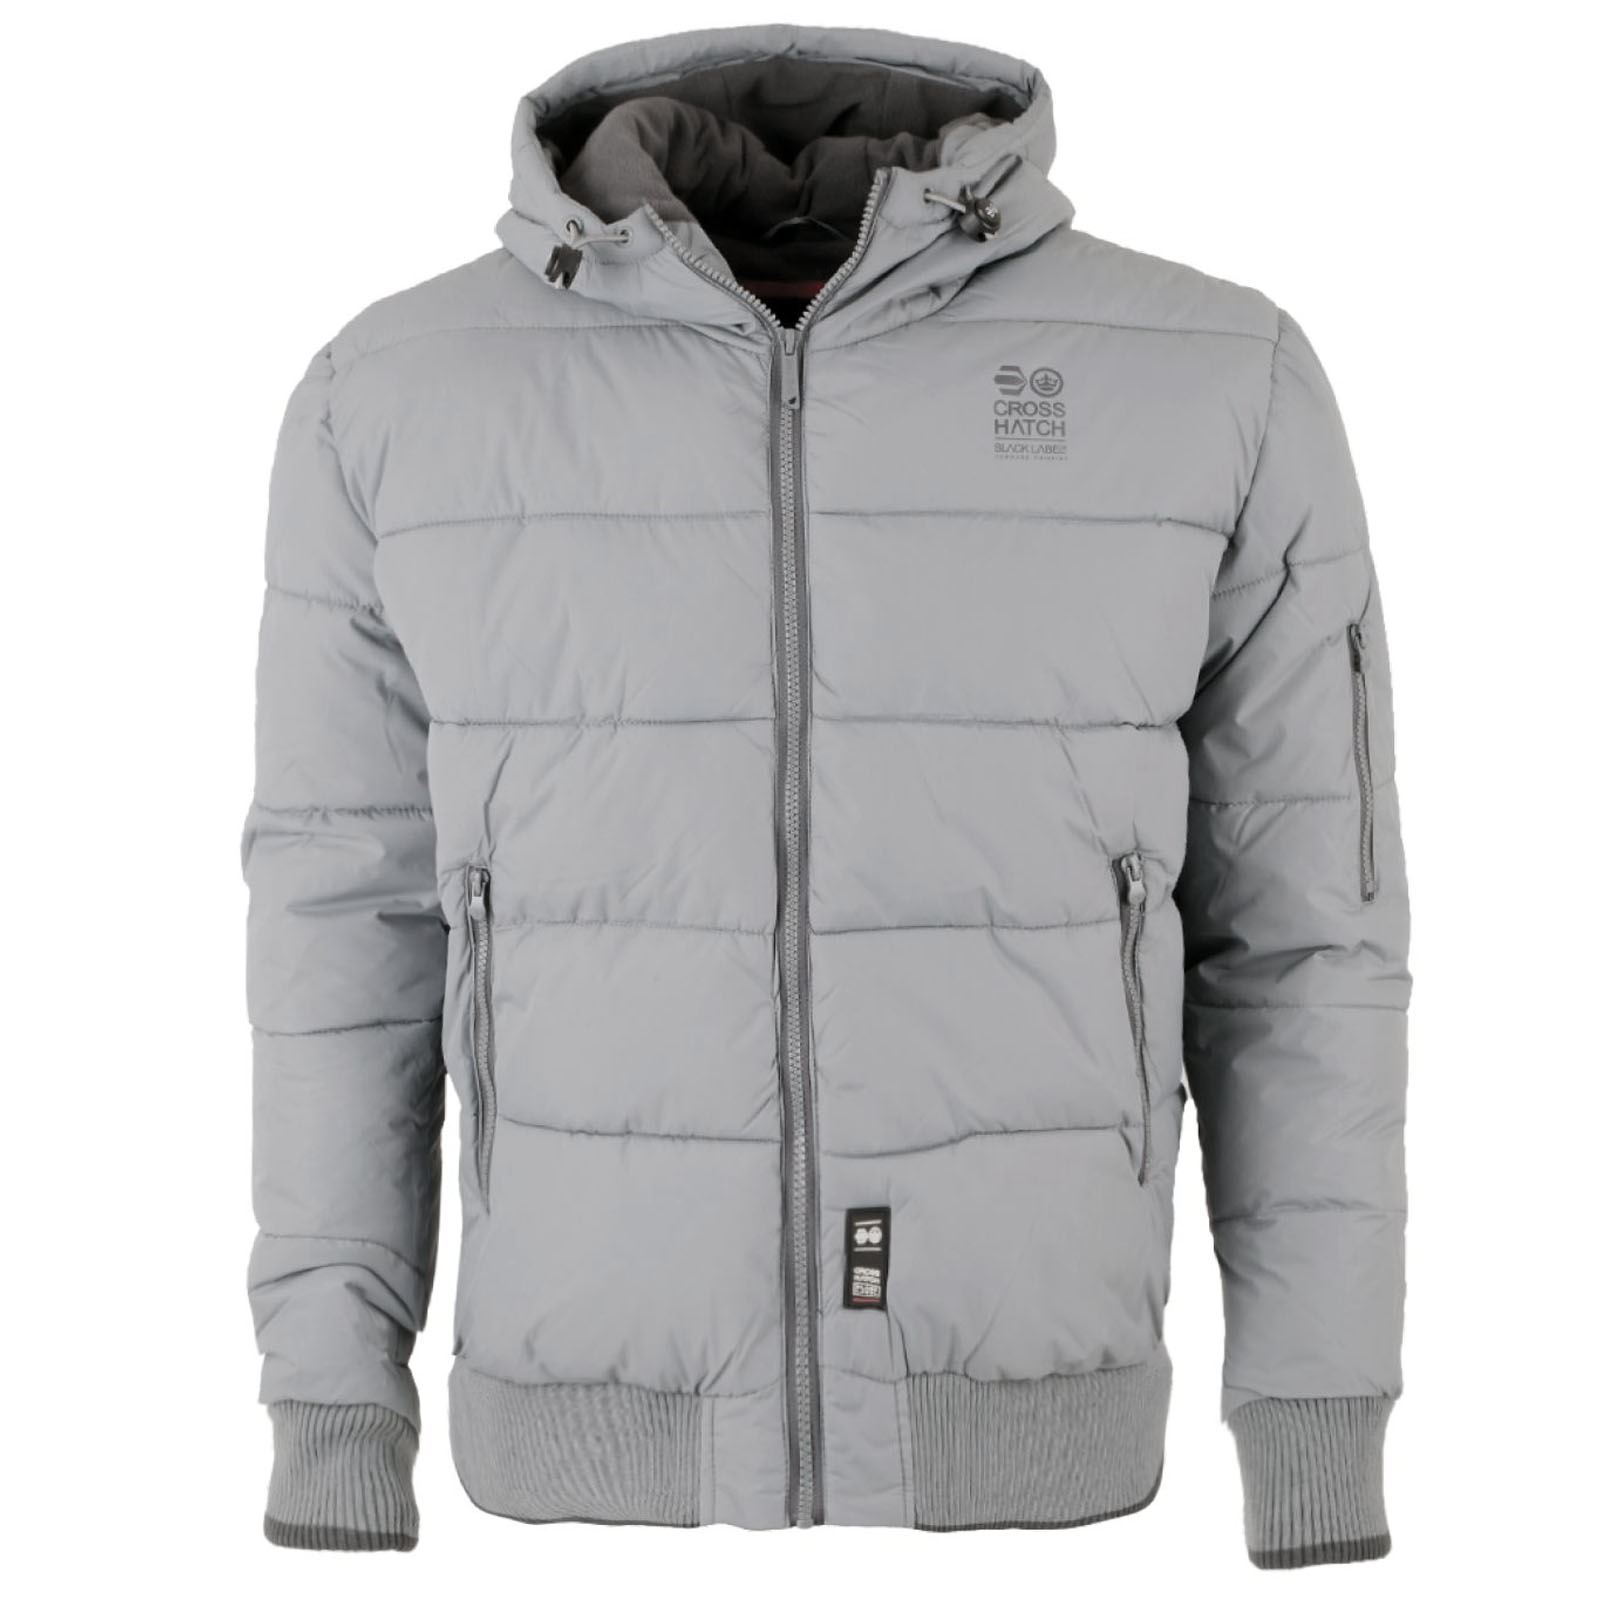 Apr 22, · The design and features of a jacket, such as a hood and drawcords, the thickness and quality of the outer material, how well the jacket fits, etc. all .